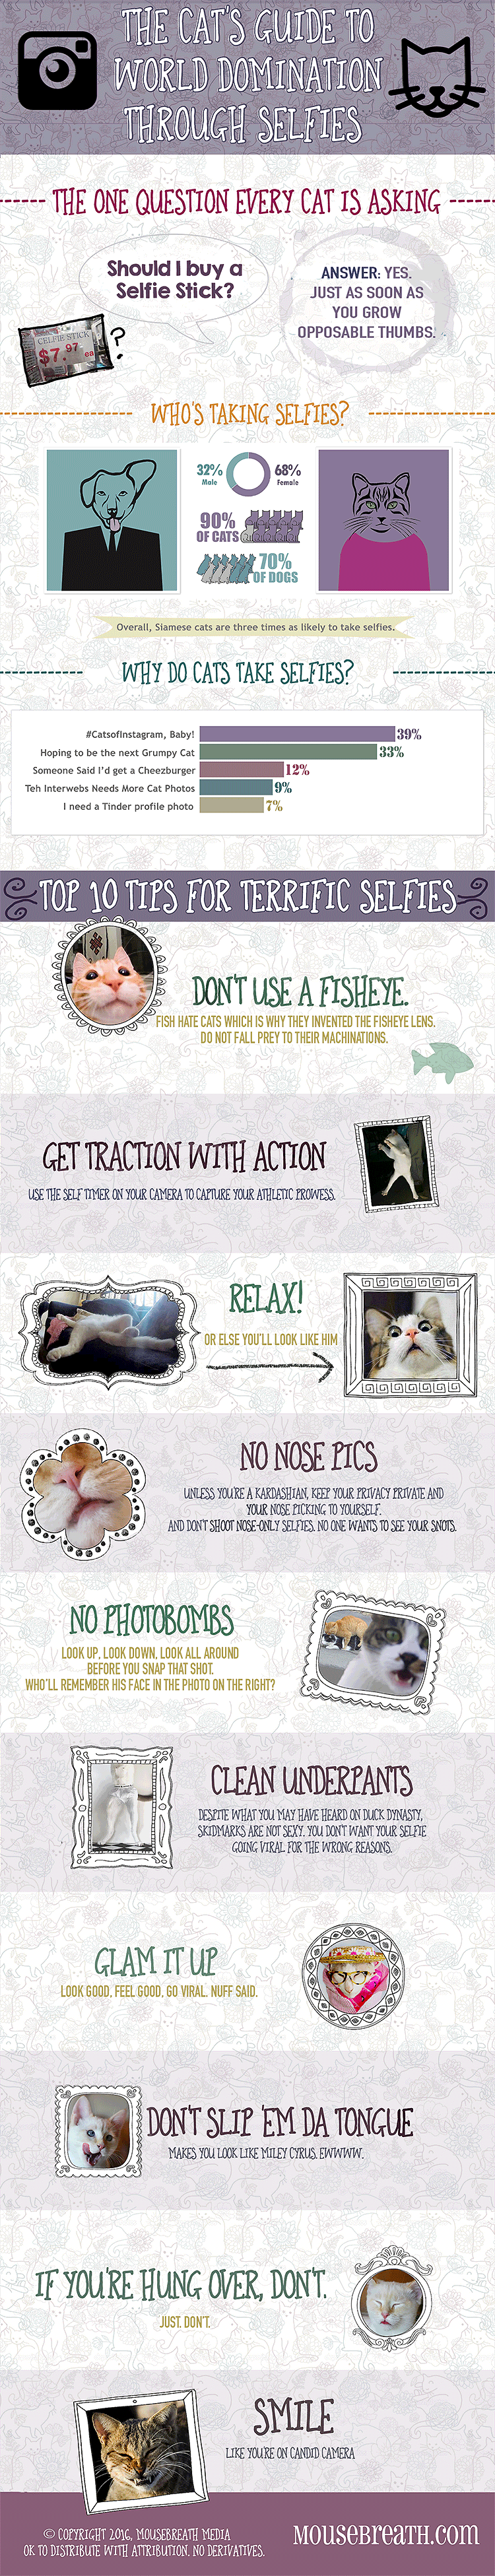 Infographic How cats can achieve world domination with